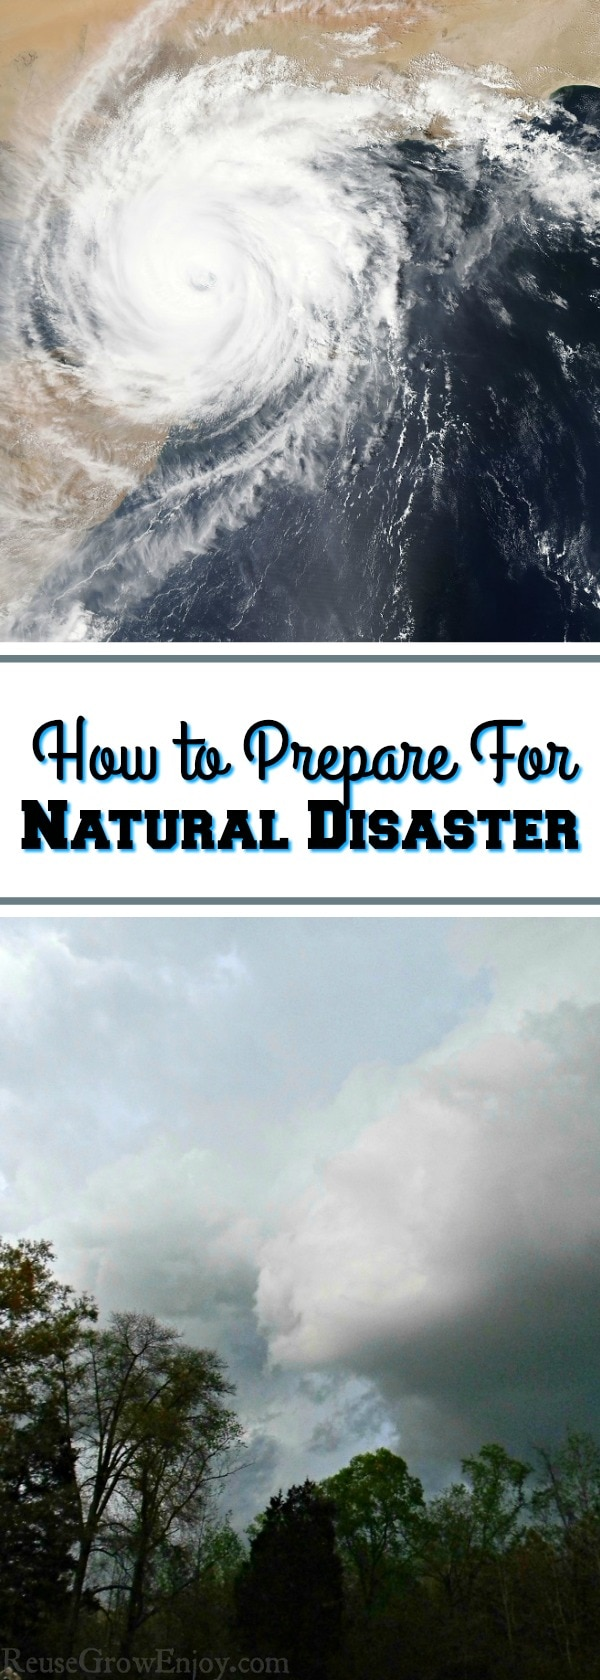 Depending on where you live,the weather and natural disaster can really make life difficult. Check out these tips on how to prepare for a natural disaster.